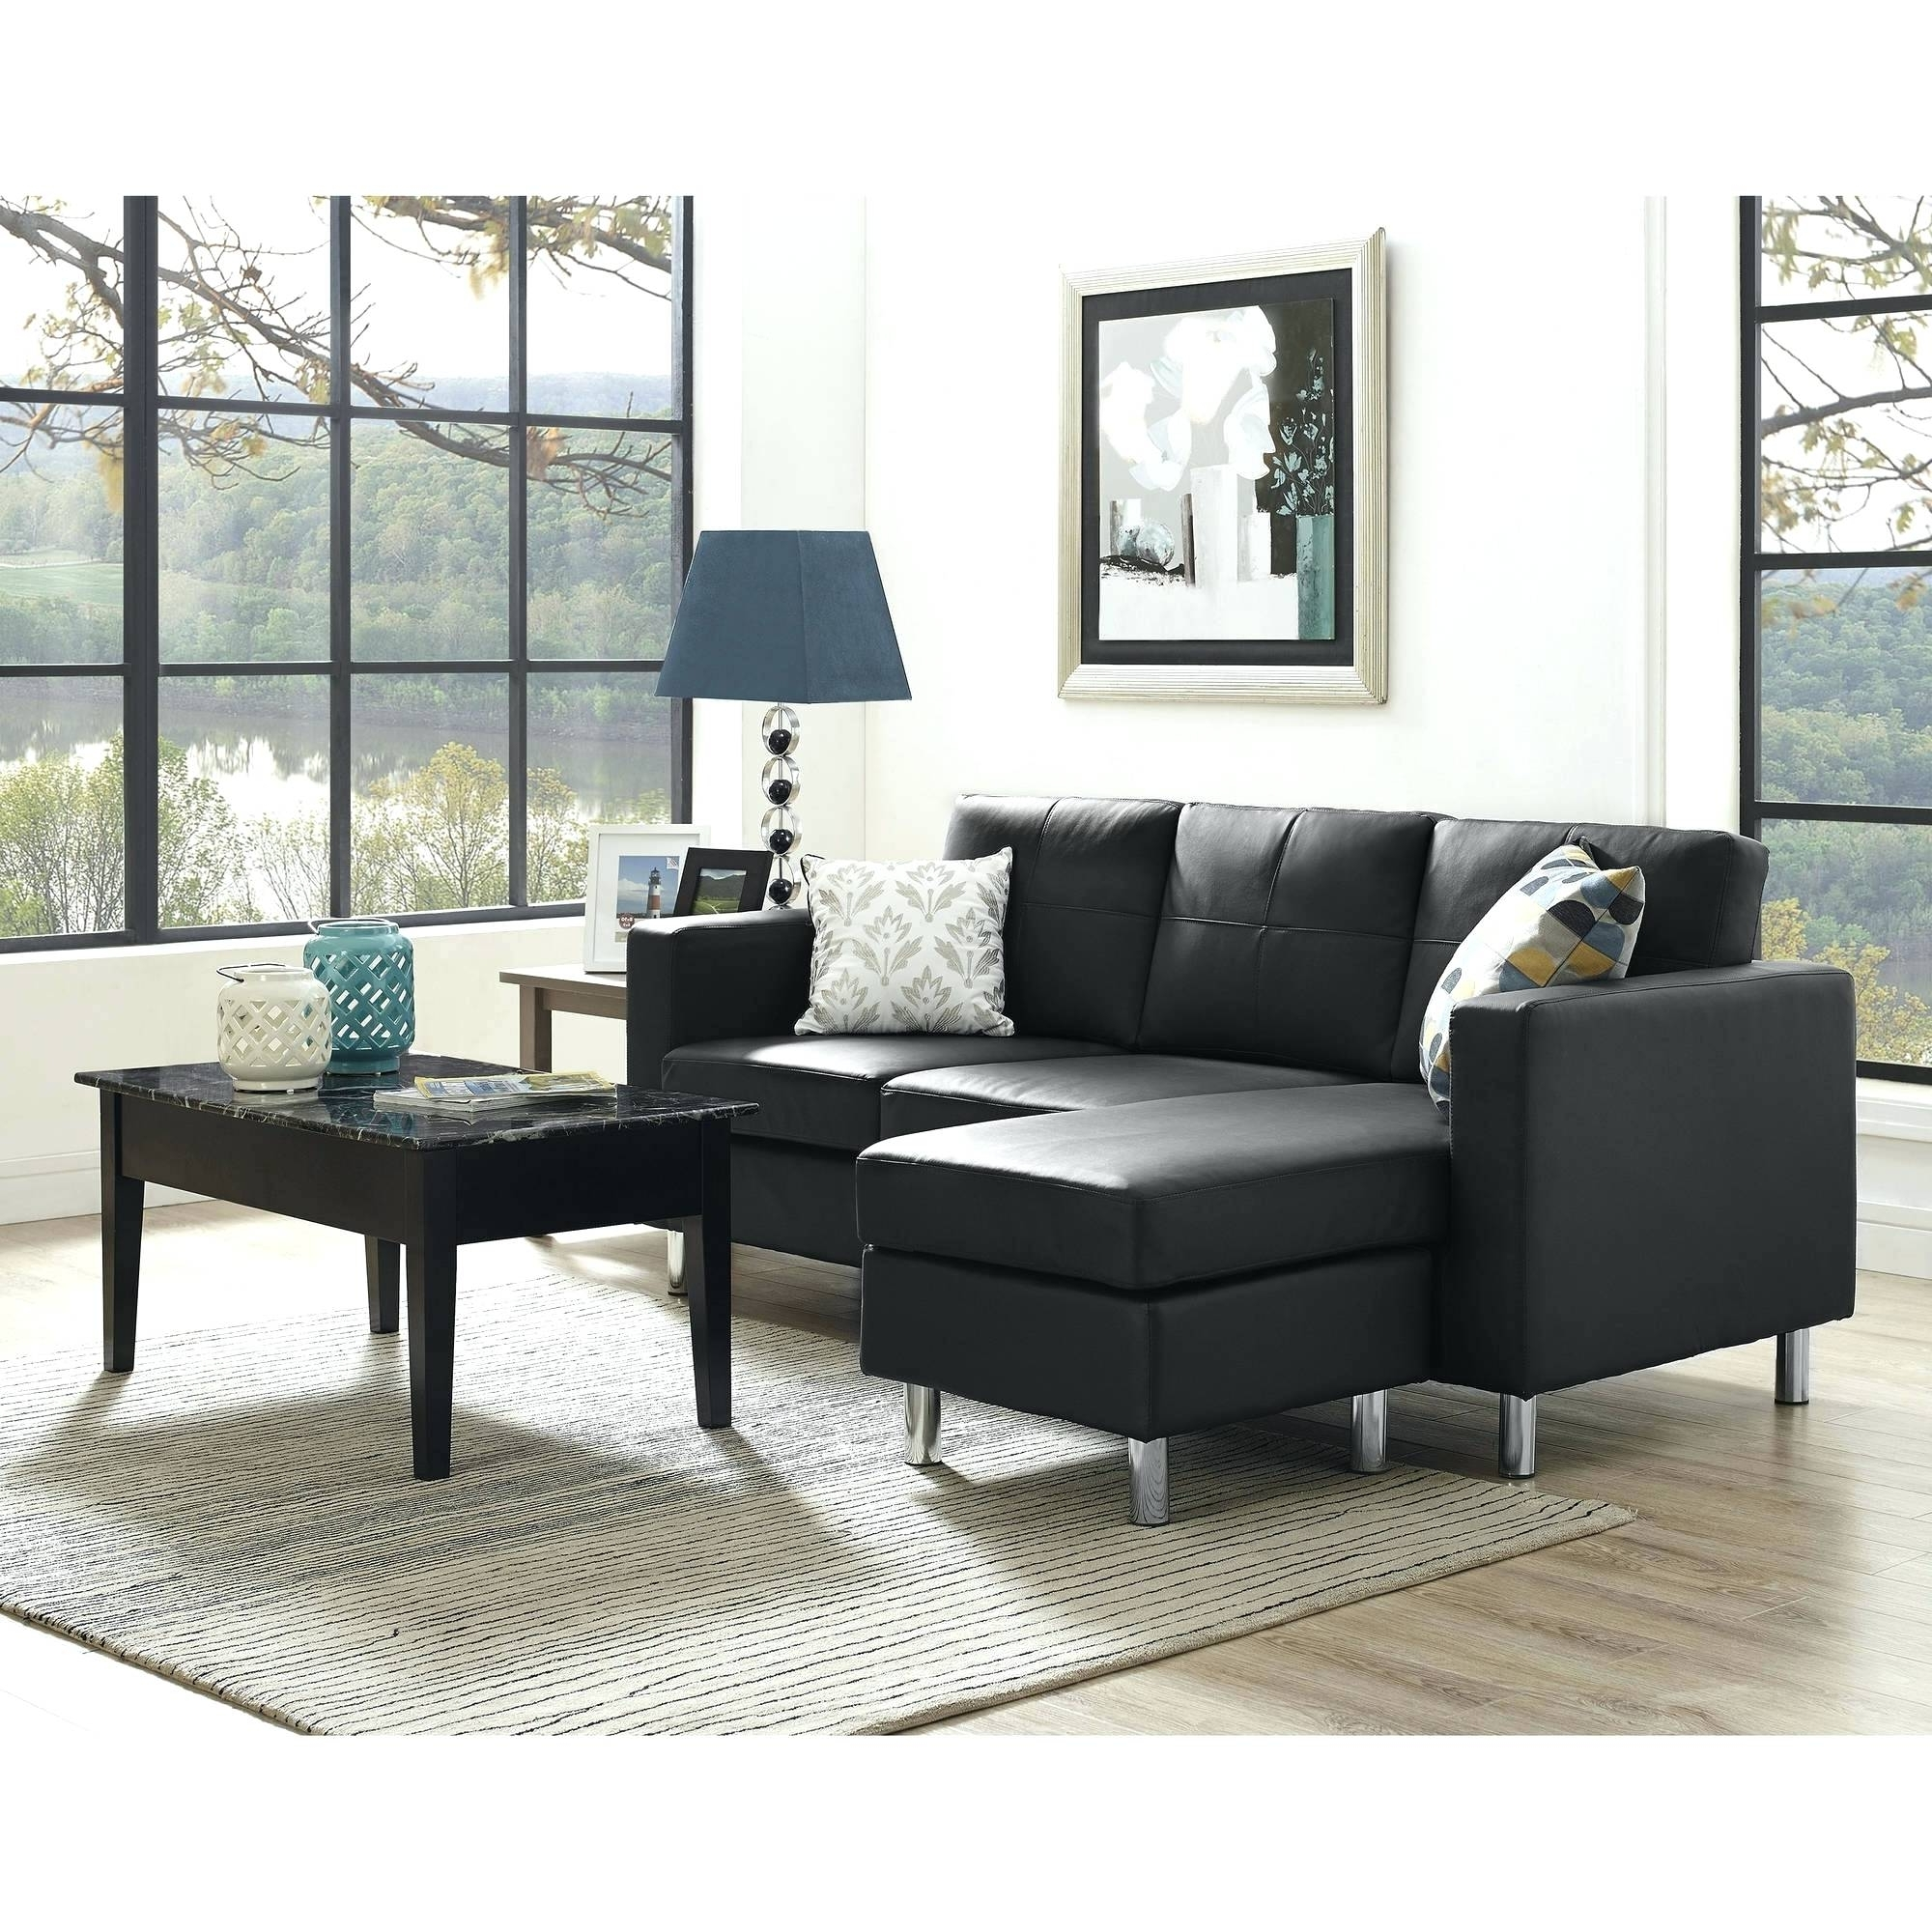 Sectional Sofas For Small Spaces With Recliners With Regard To Most Up To Date Leather Sectional Sofas Sawonderful Sa Contemporary For Small (View 15 of 20)